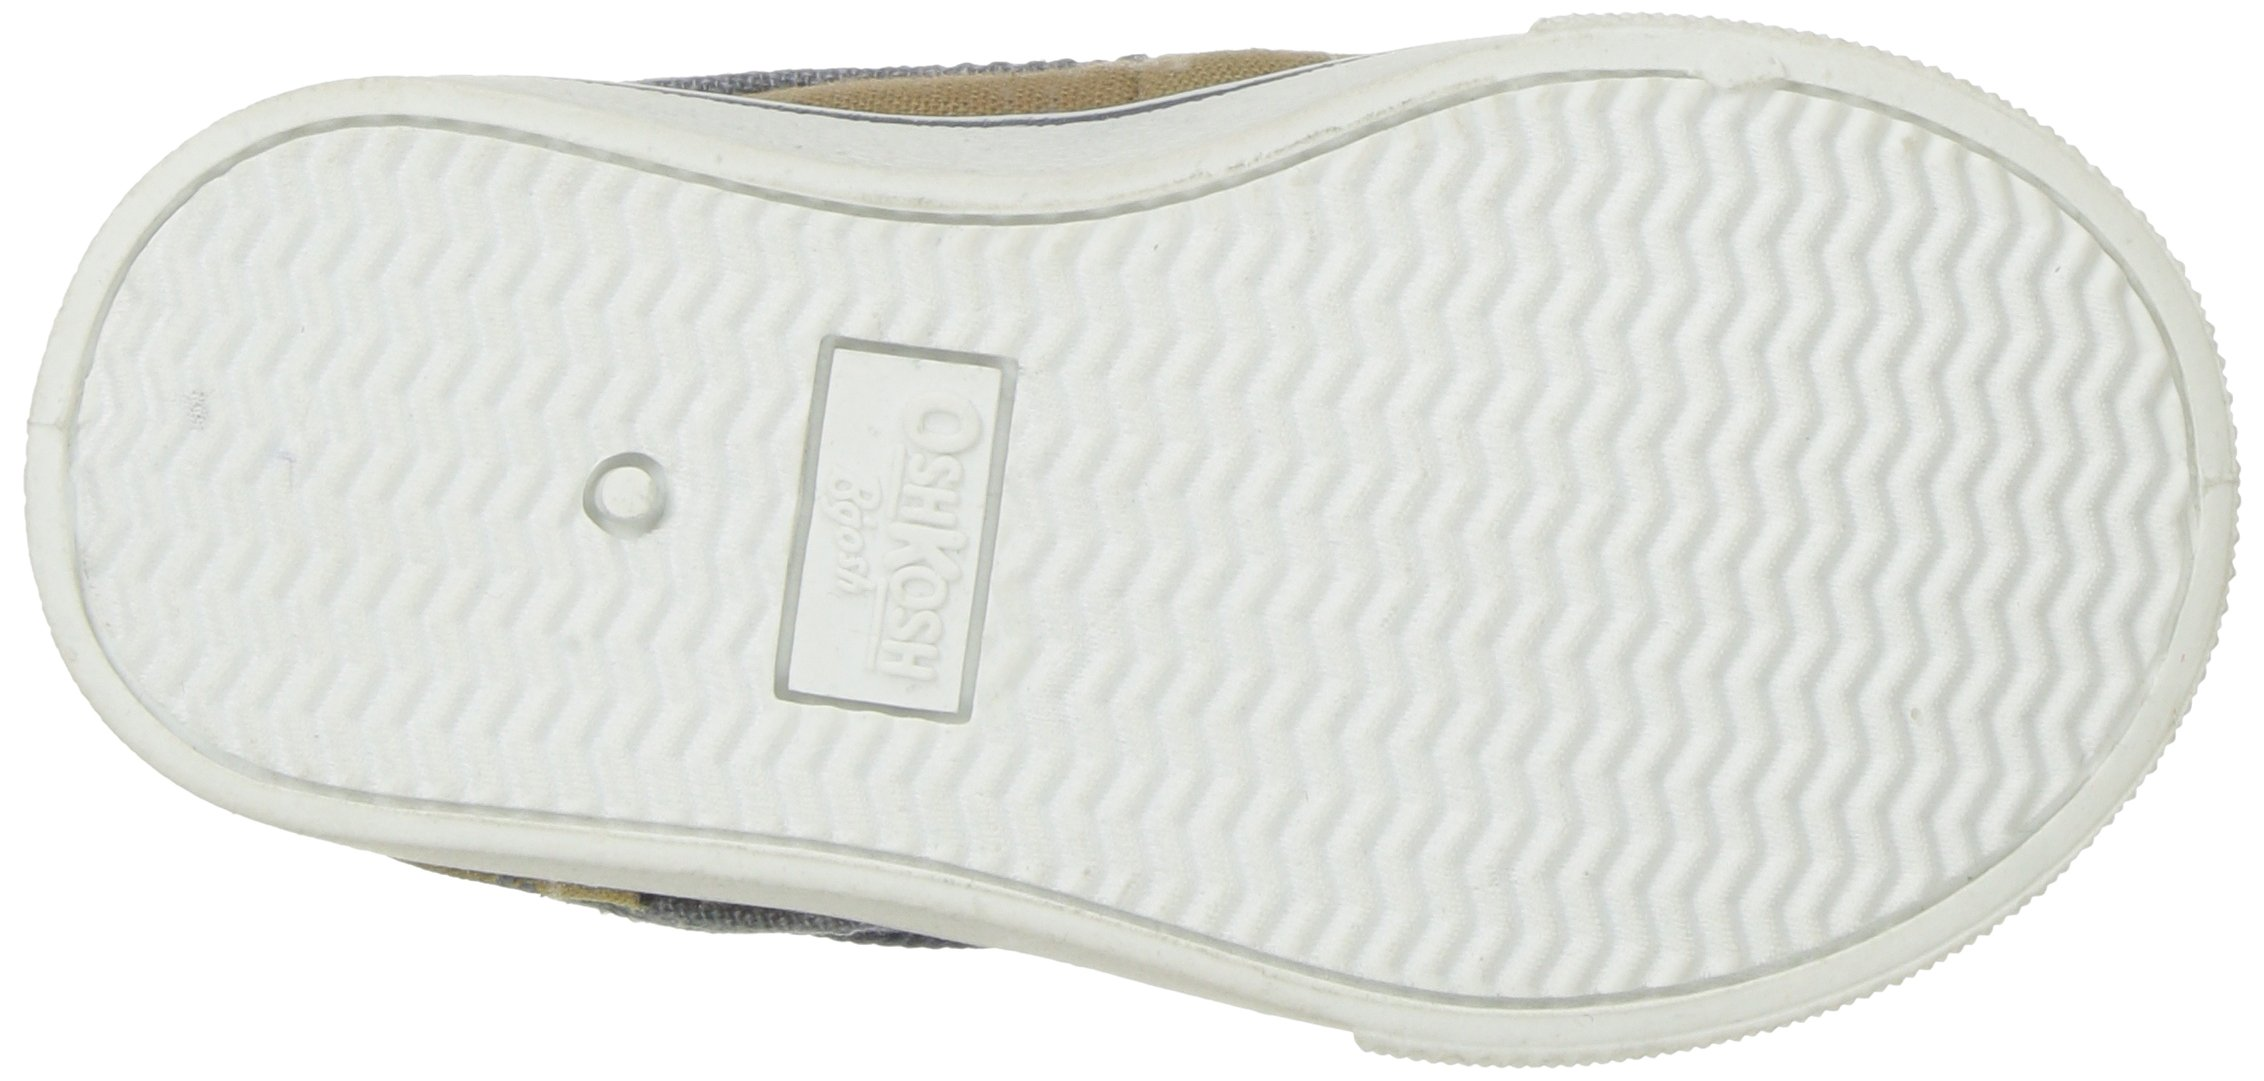 OshKosh B'Gosh Albie Boy's Boat Shoe, Khaki, 12 M US Little Kid by OshKosh B'Gosh (Image #3)